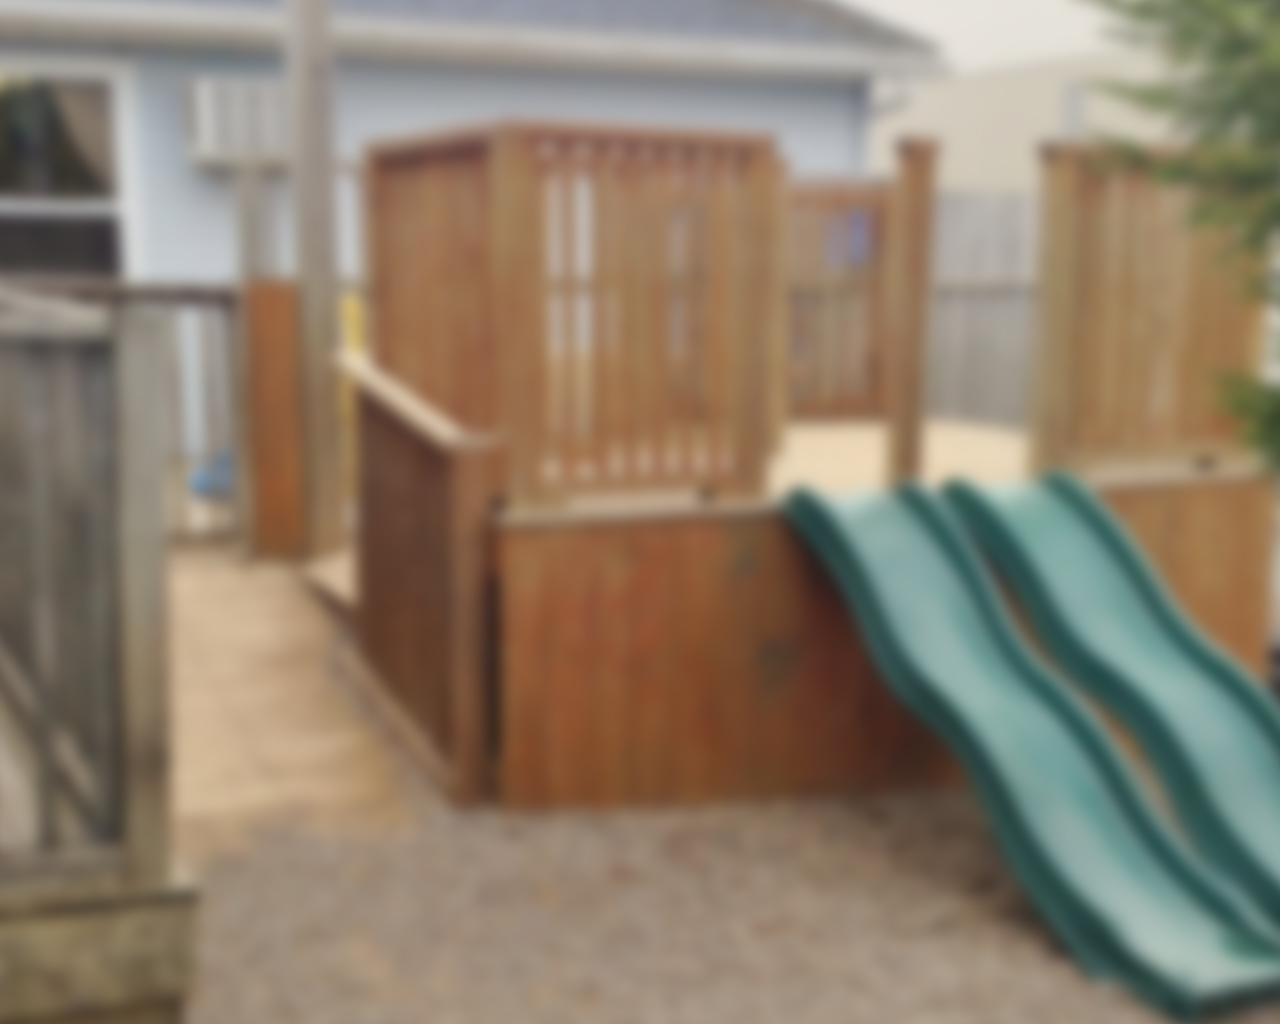 Blurred background image of the playground at Kids R Kids